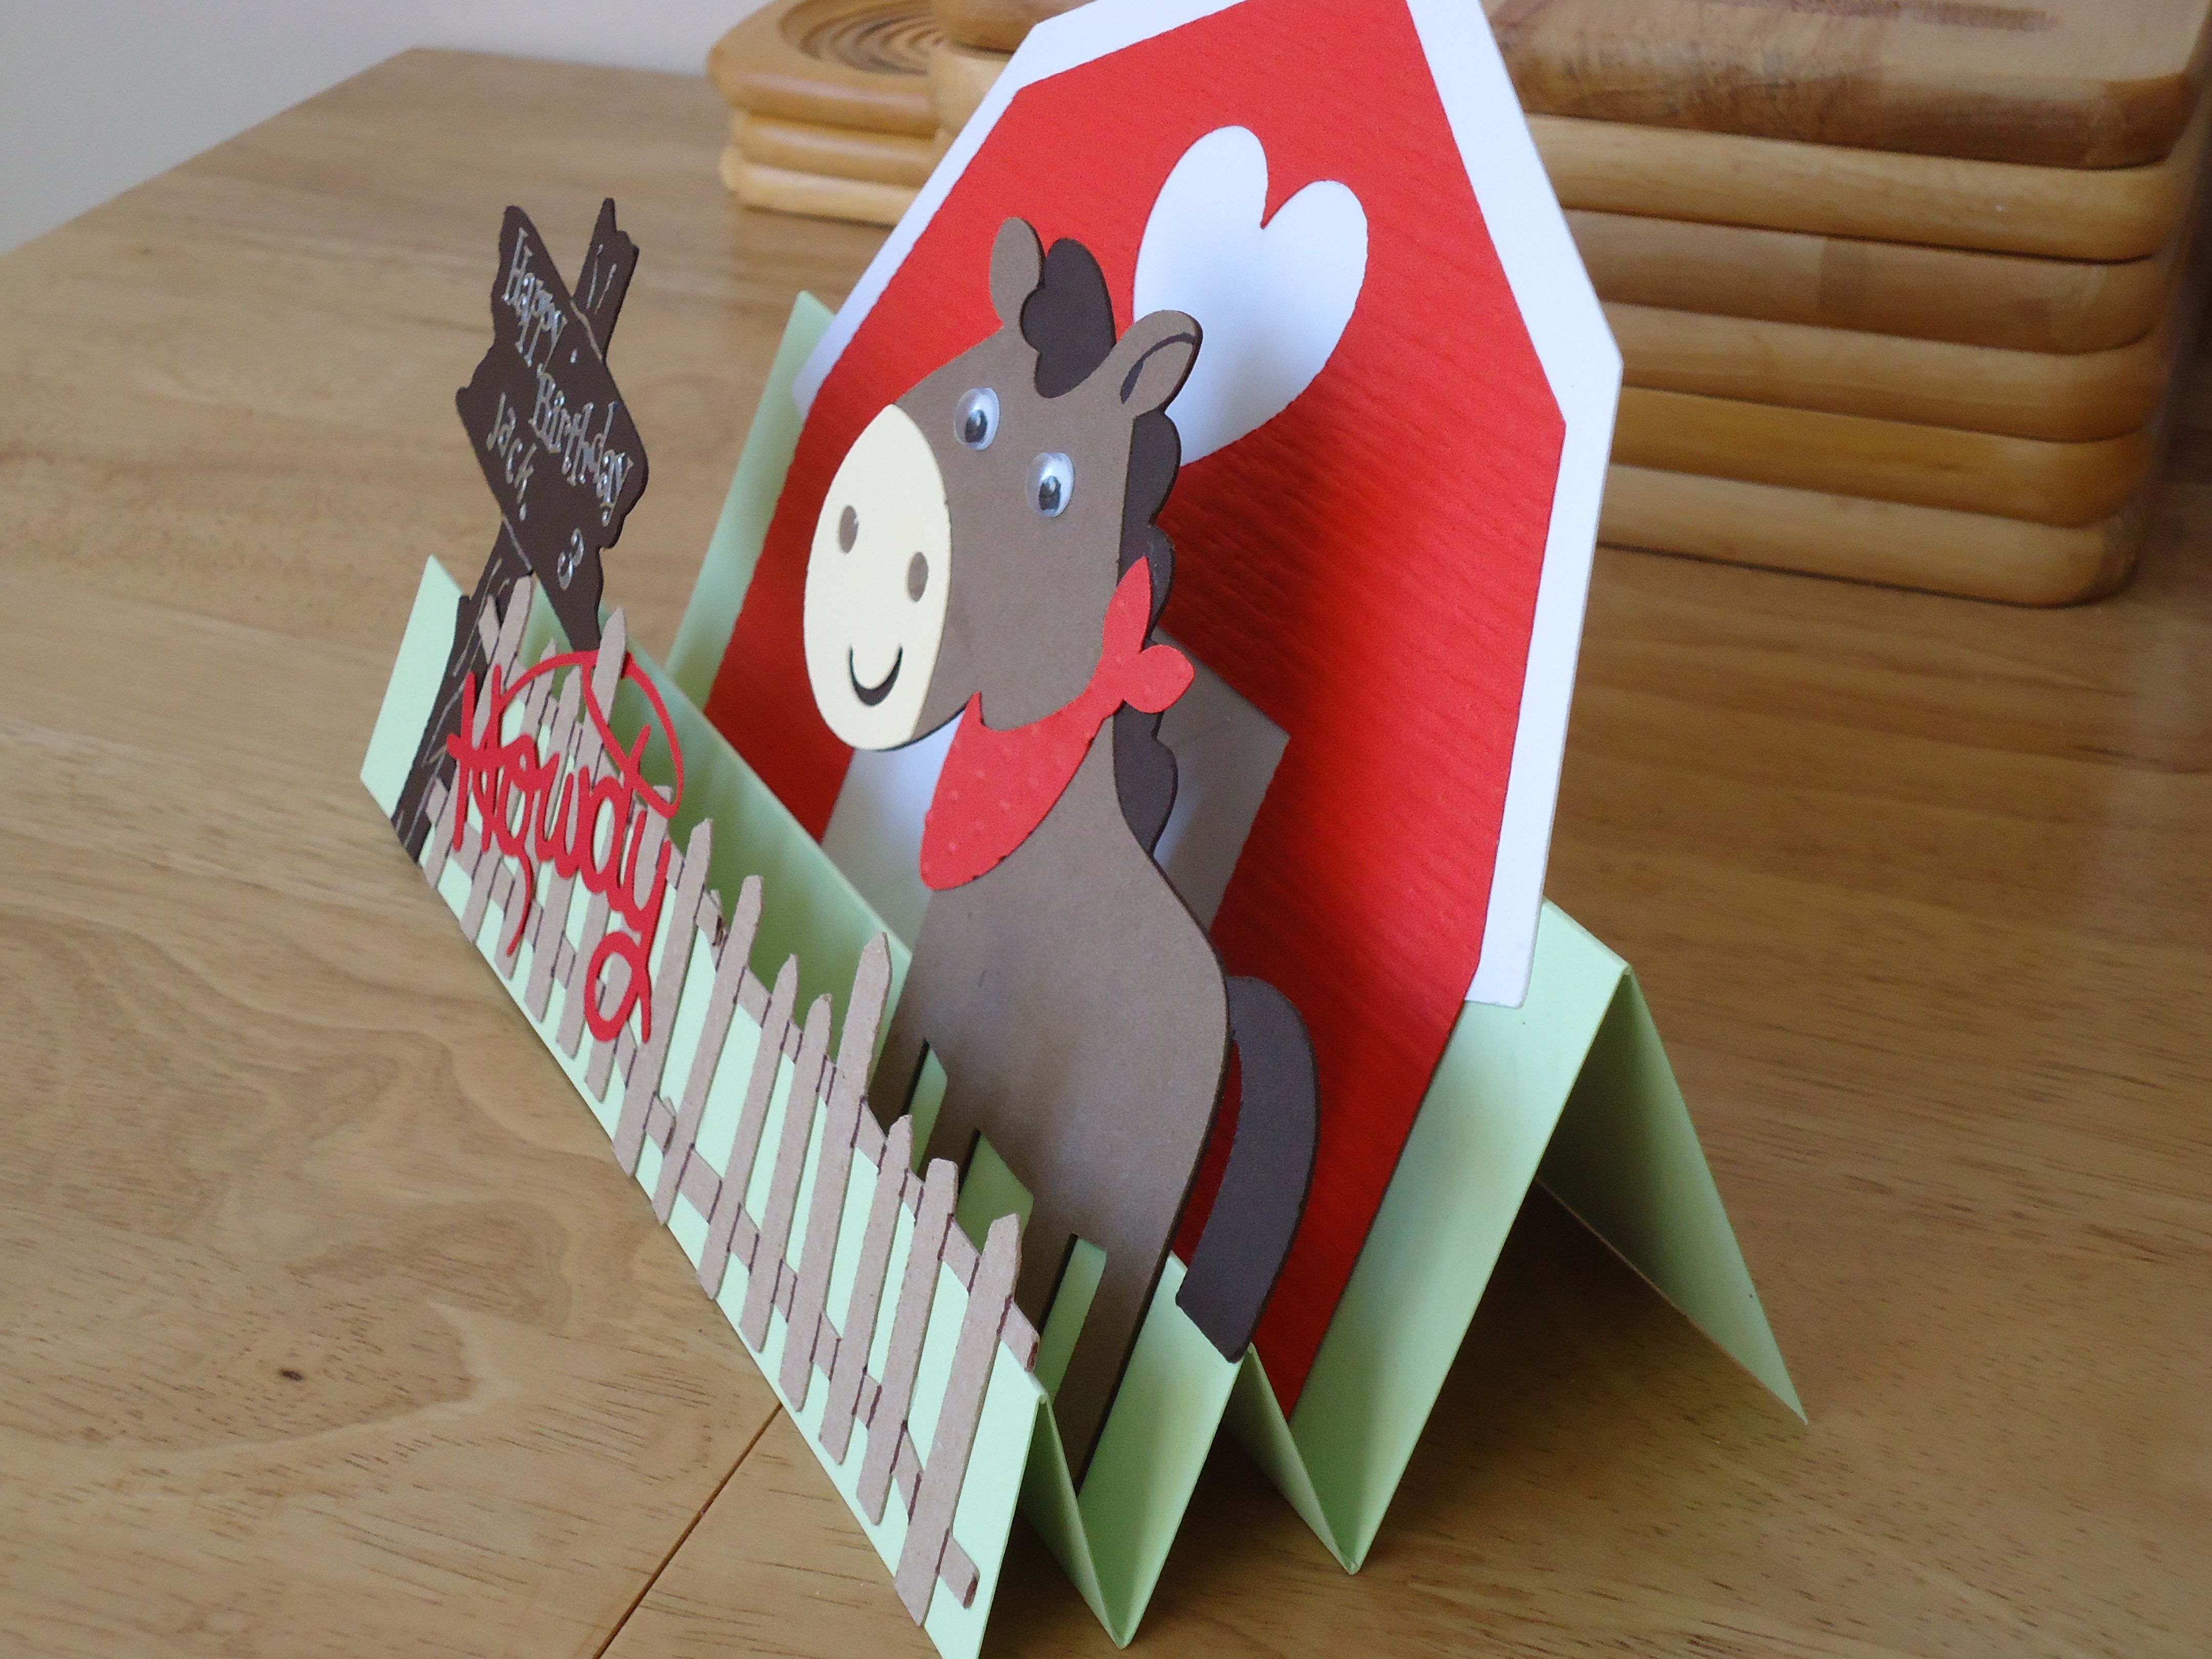 Scrapbook ideas using cricut - Side View Of Horse And Stable Card Made Using Cricut Create A Critter